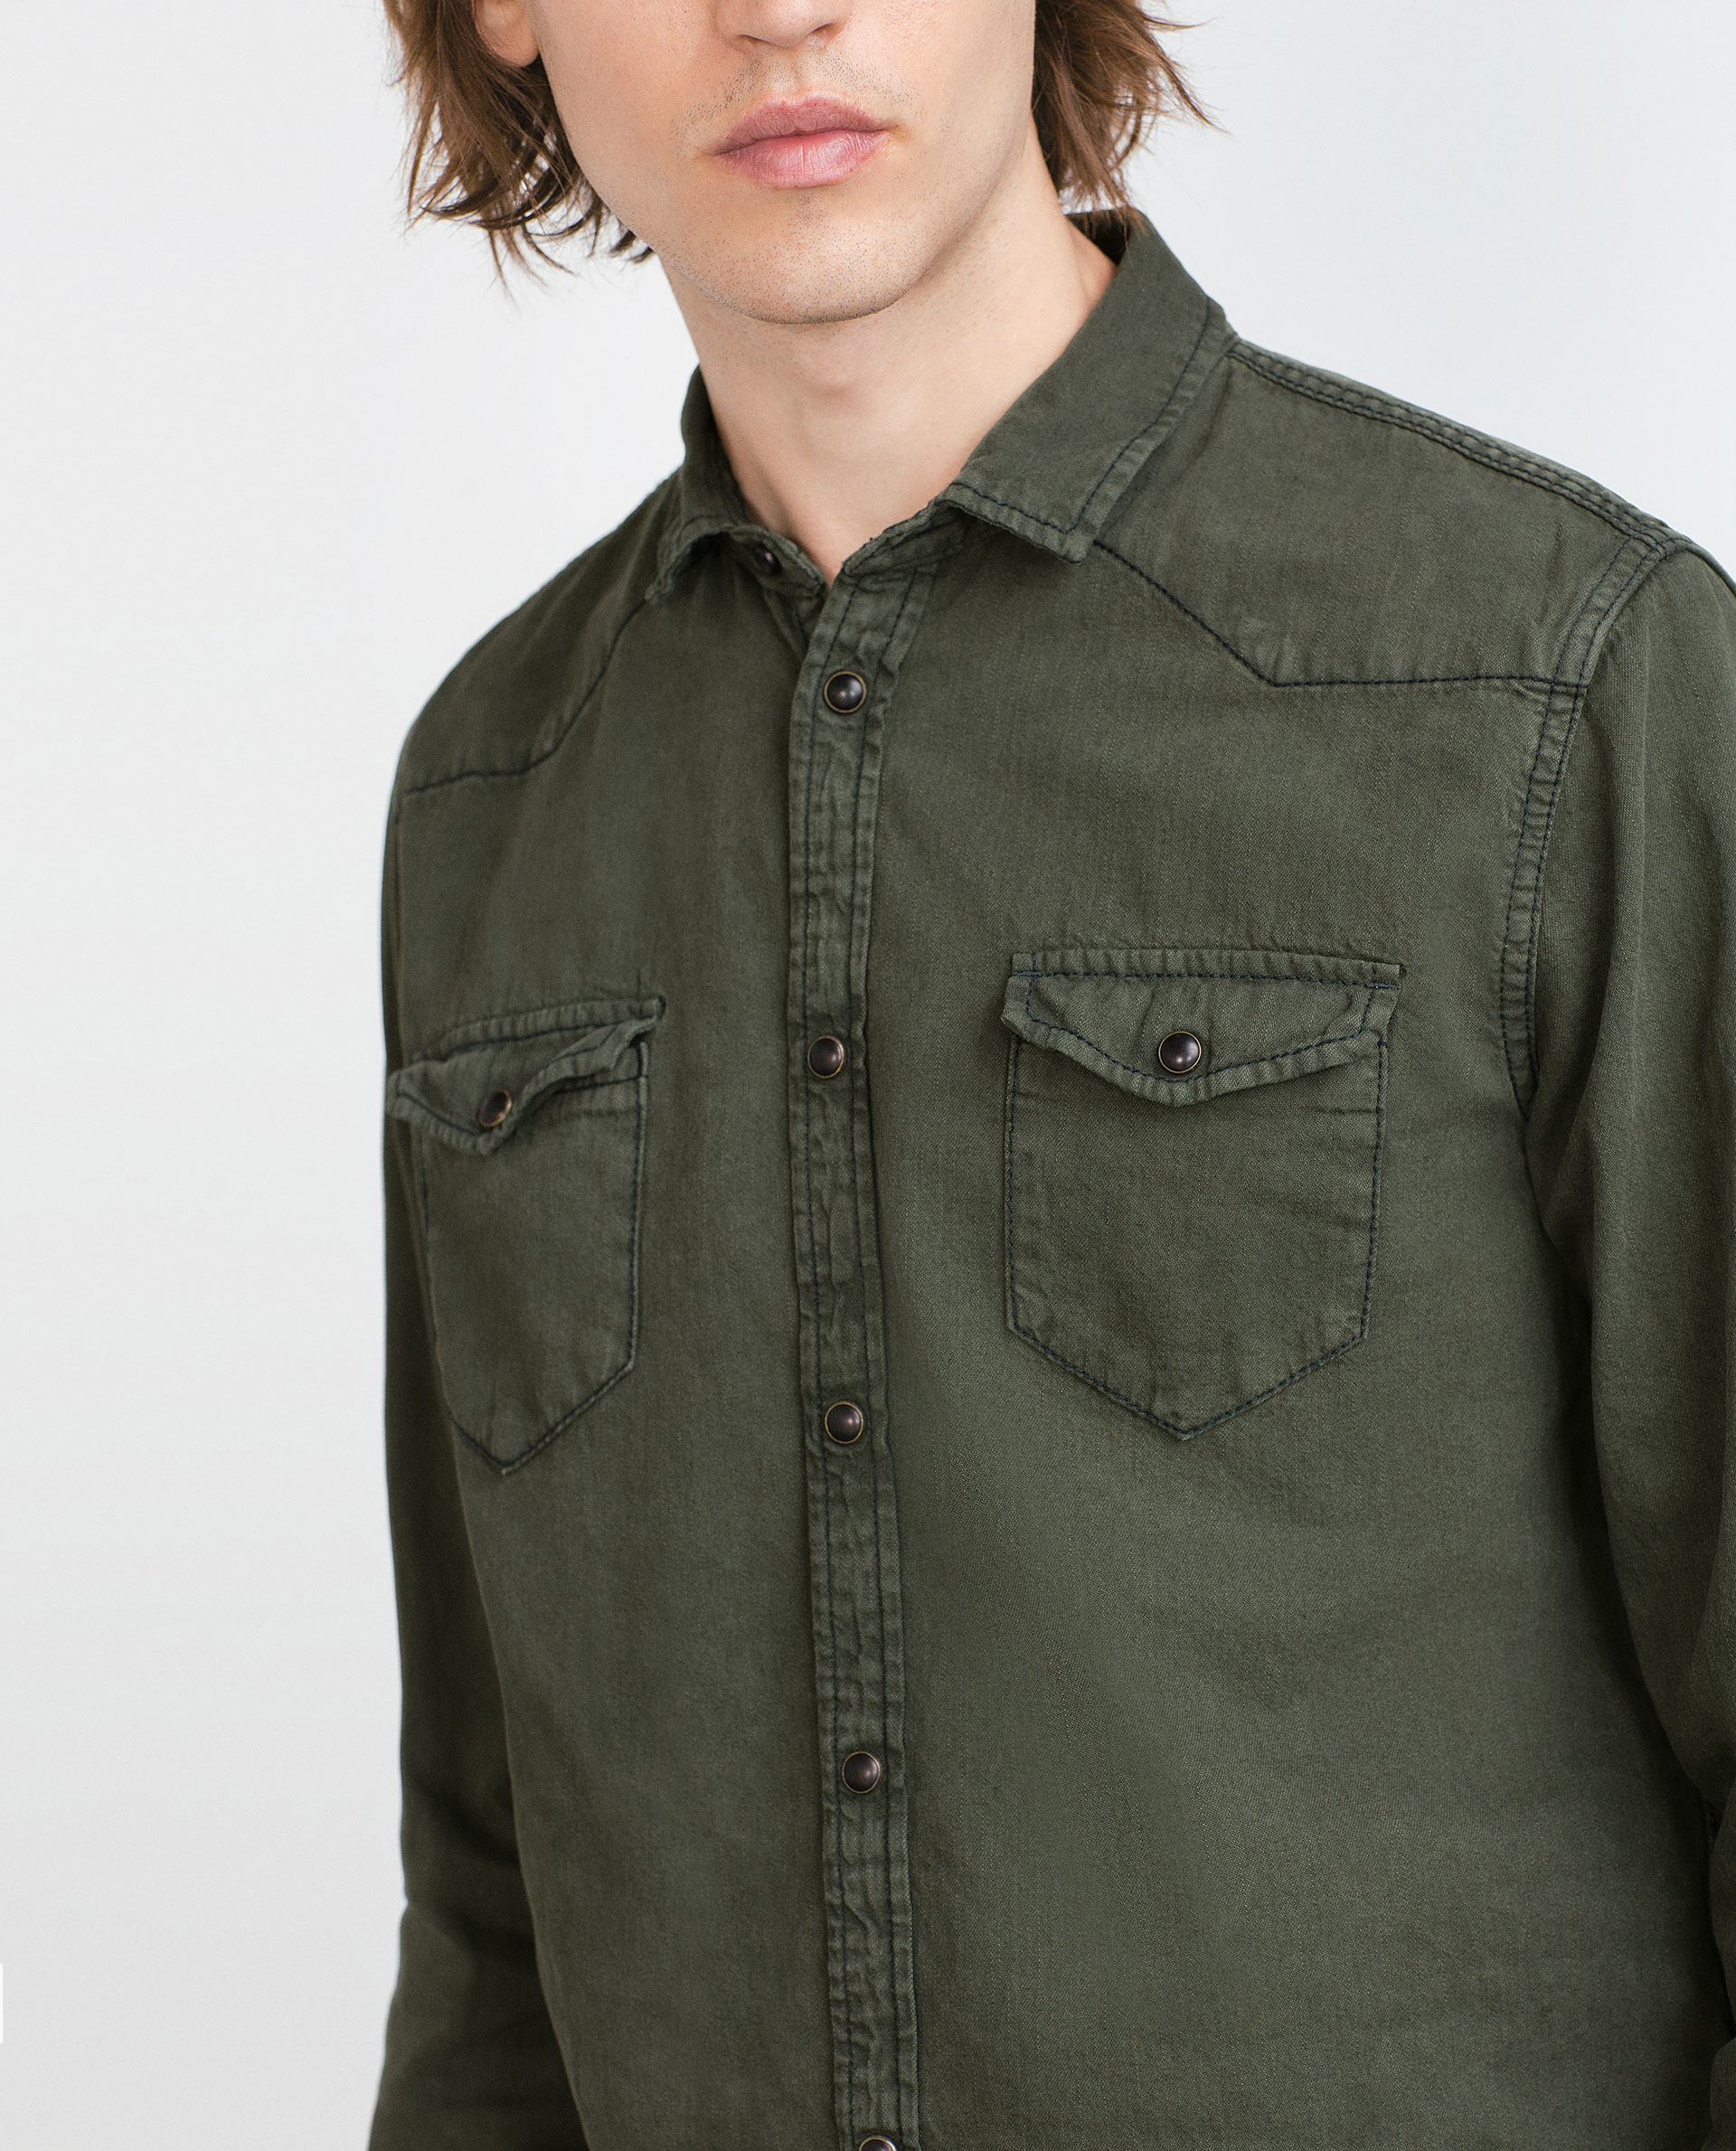 Brand ASOS menswear shuts down the new season with the latest trends and the coolest products, designed in London and sold across the world. Update your go-to garms with the new shapes and fits from our ASOS design team, from essential tees to on-point outerwear, and .